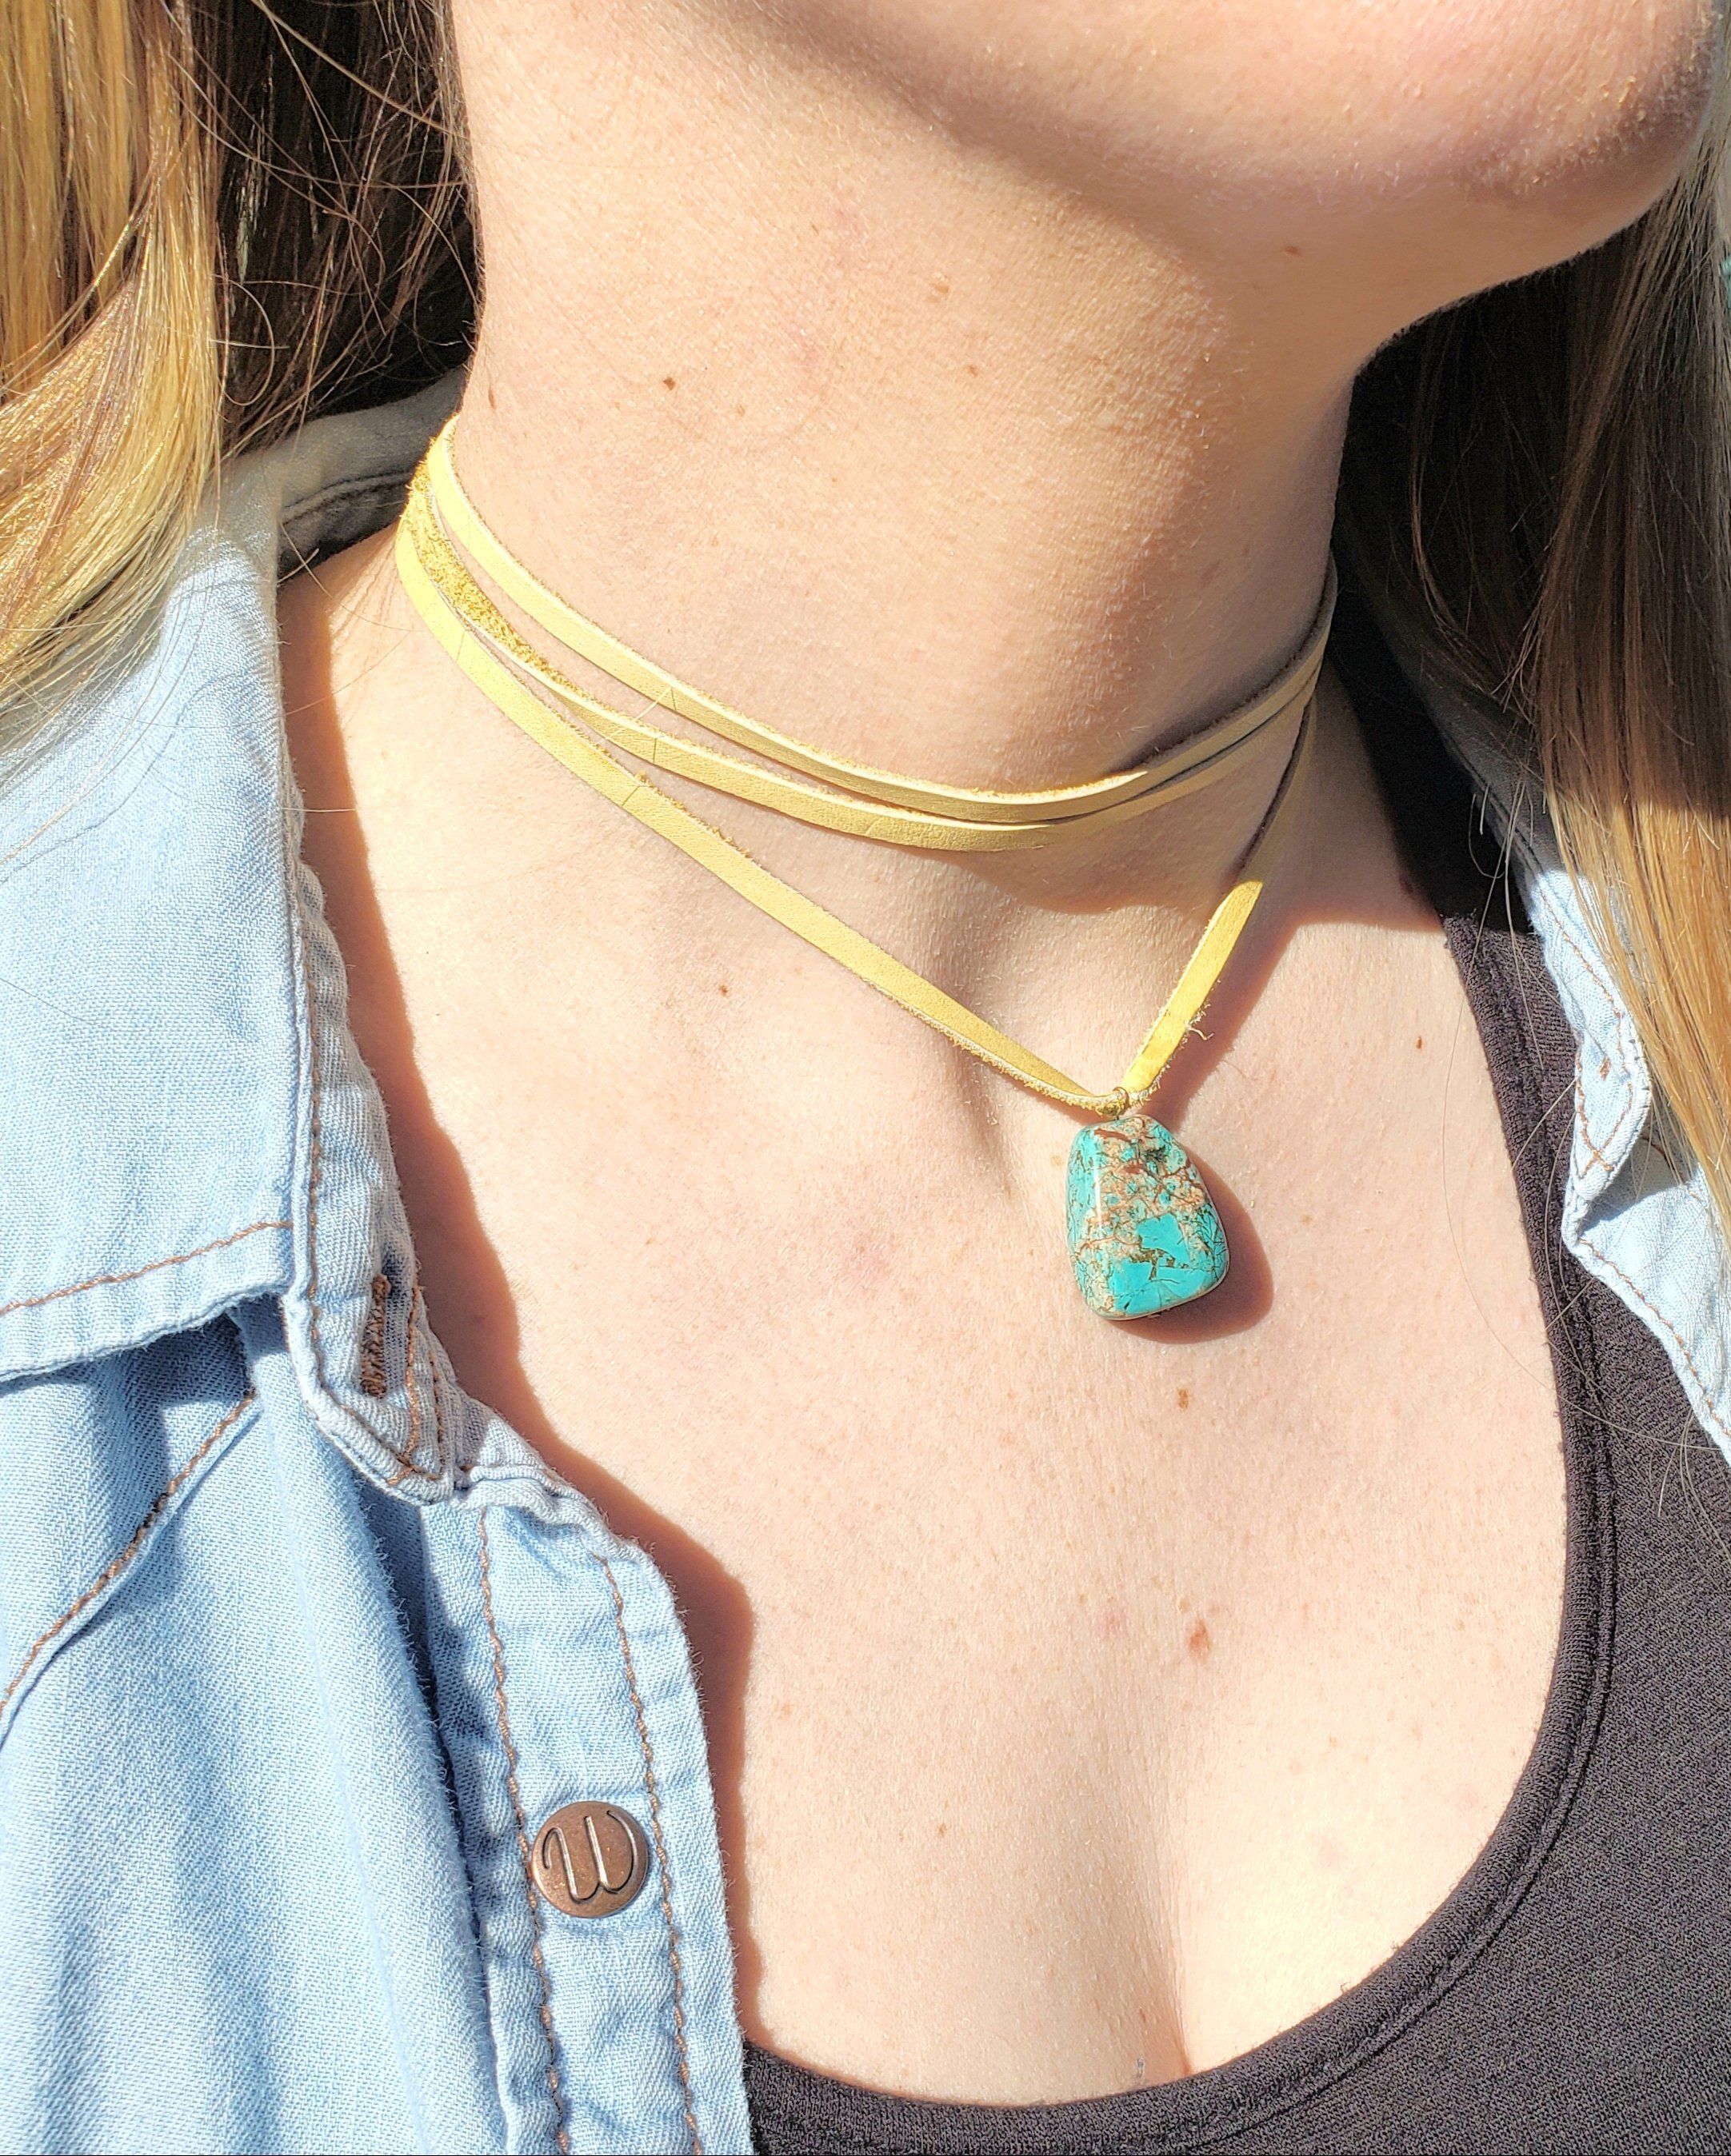 3 Strand Deer Skin Lace Choker With Turquoise Pendant